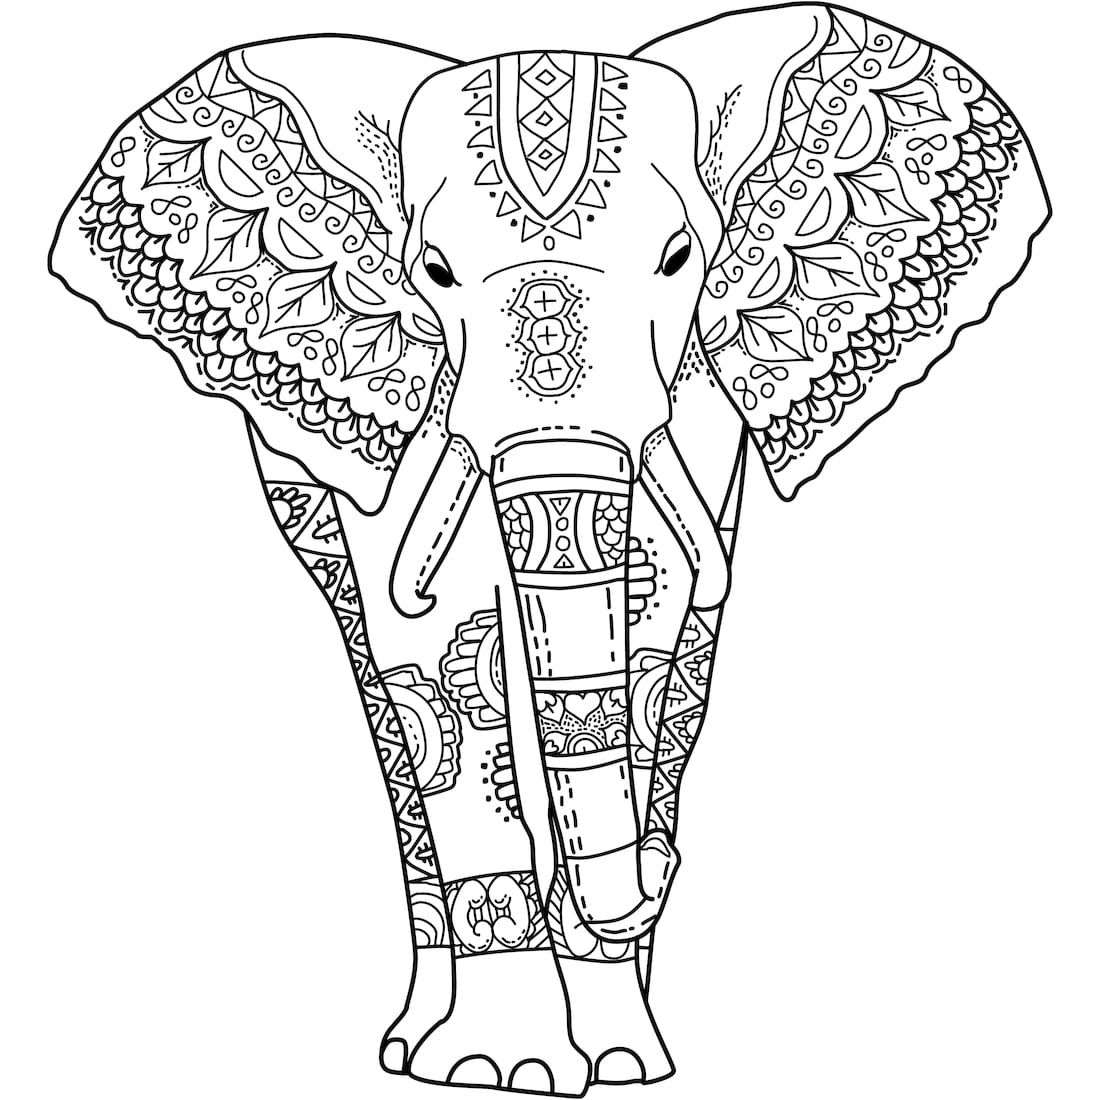 1100x1100 Ganesha Is One Of The Most Well Recognized Deities In Buddhism He